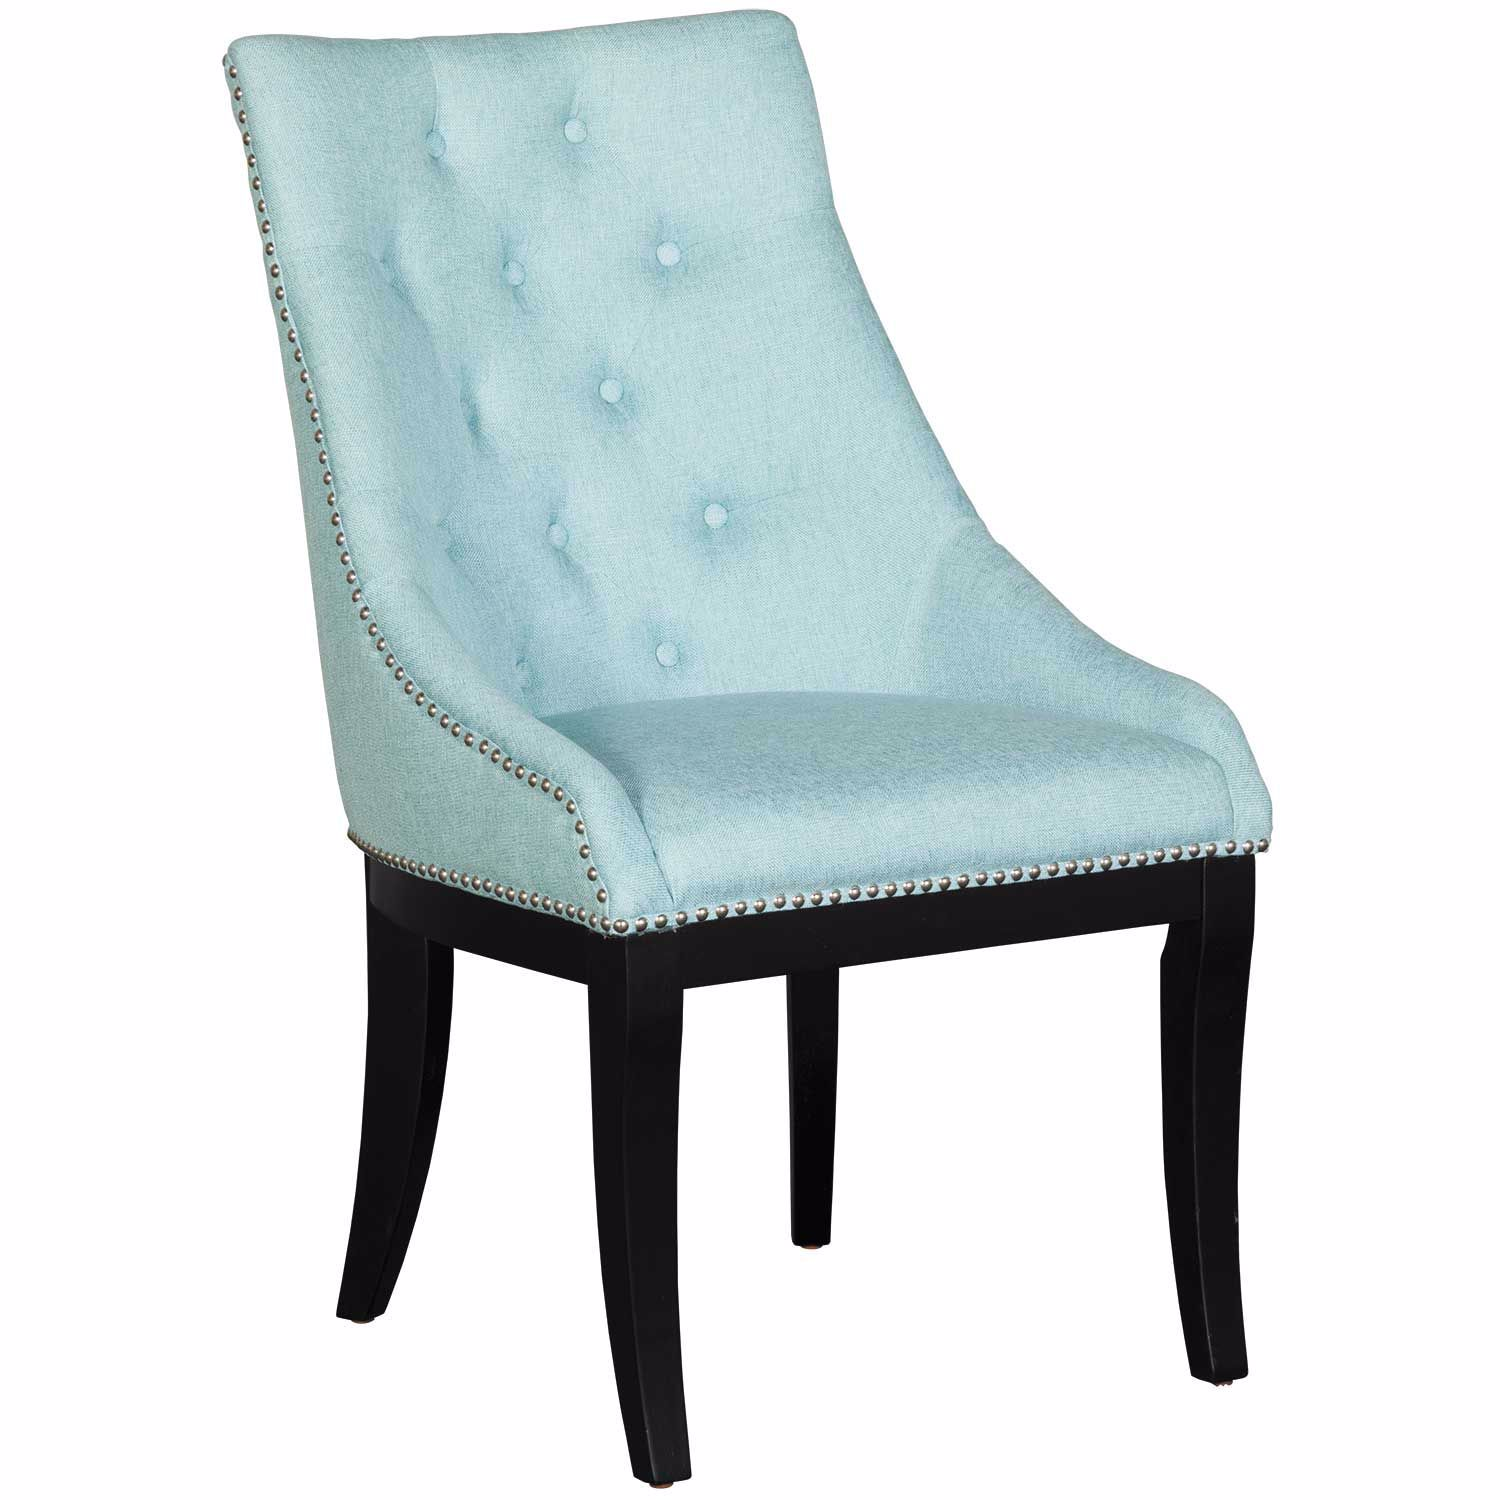 Picture of Celeste Blue Wingback Accent Chair